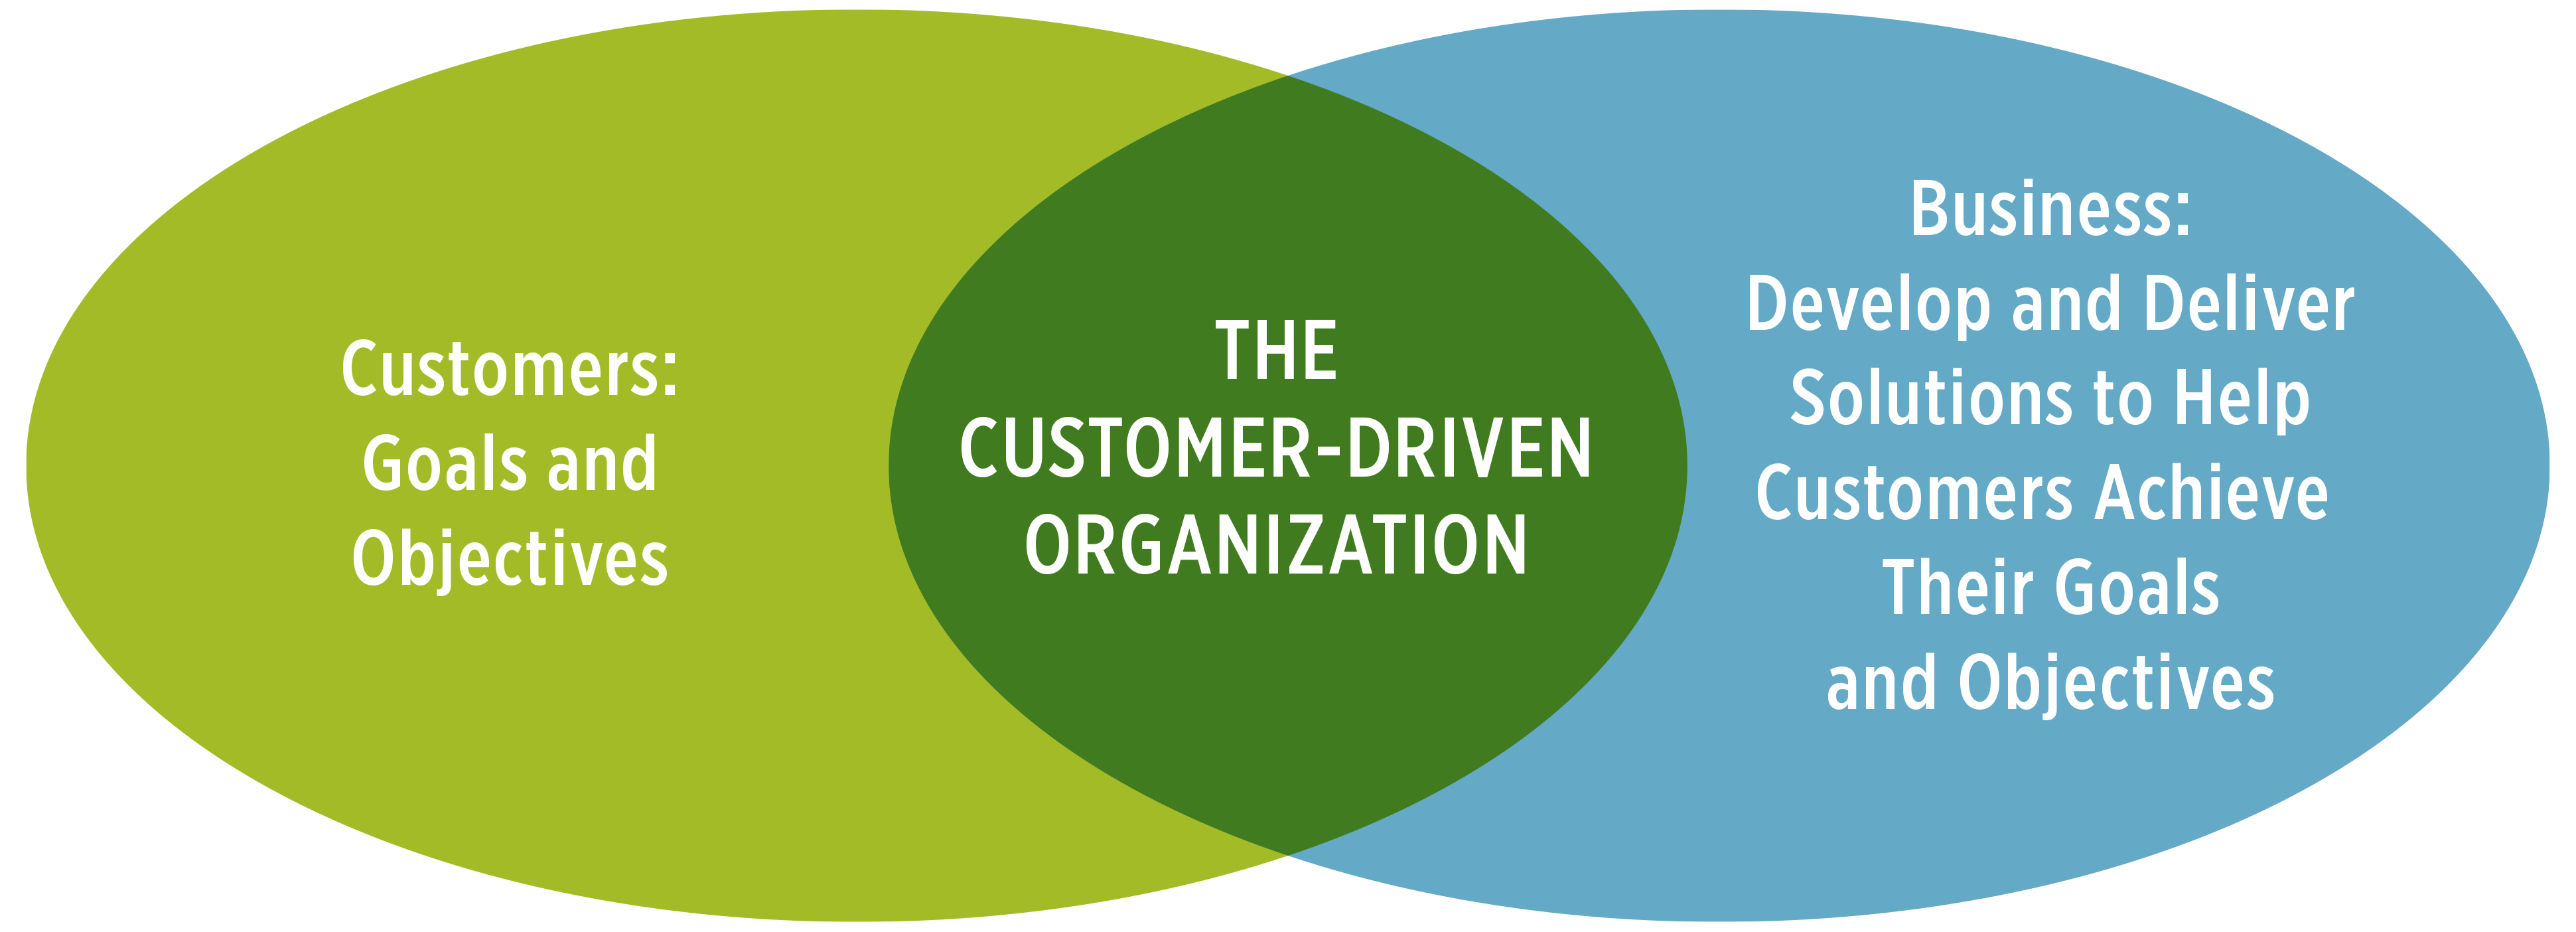 Venn diagram: customers - the customer-drive organization - business